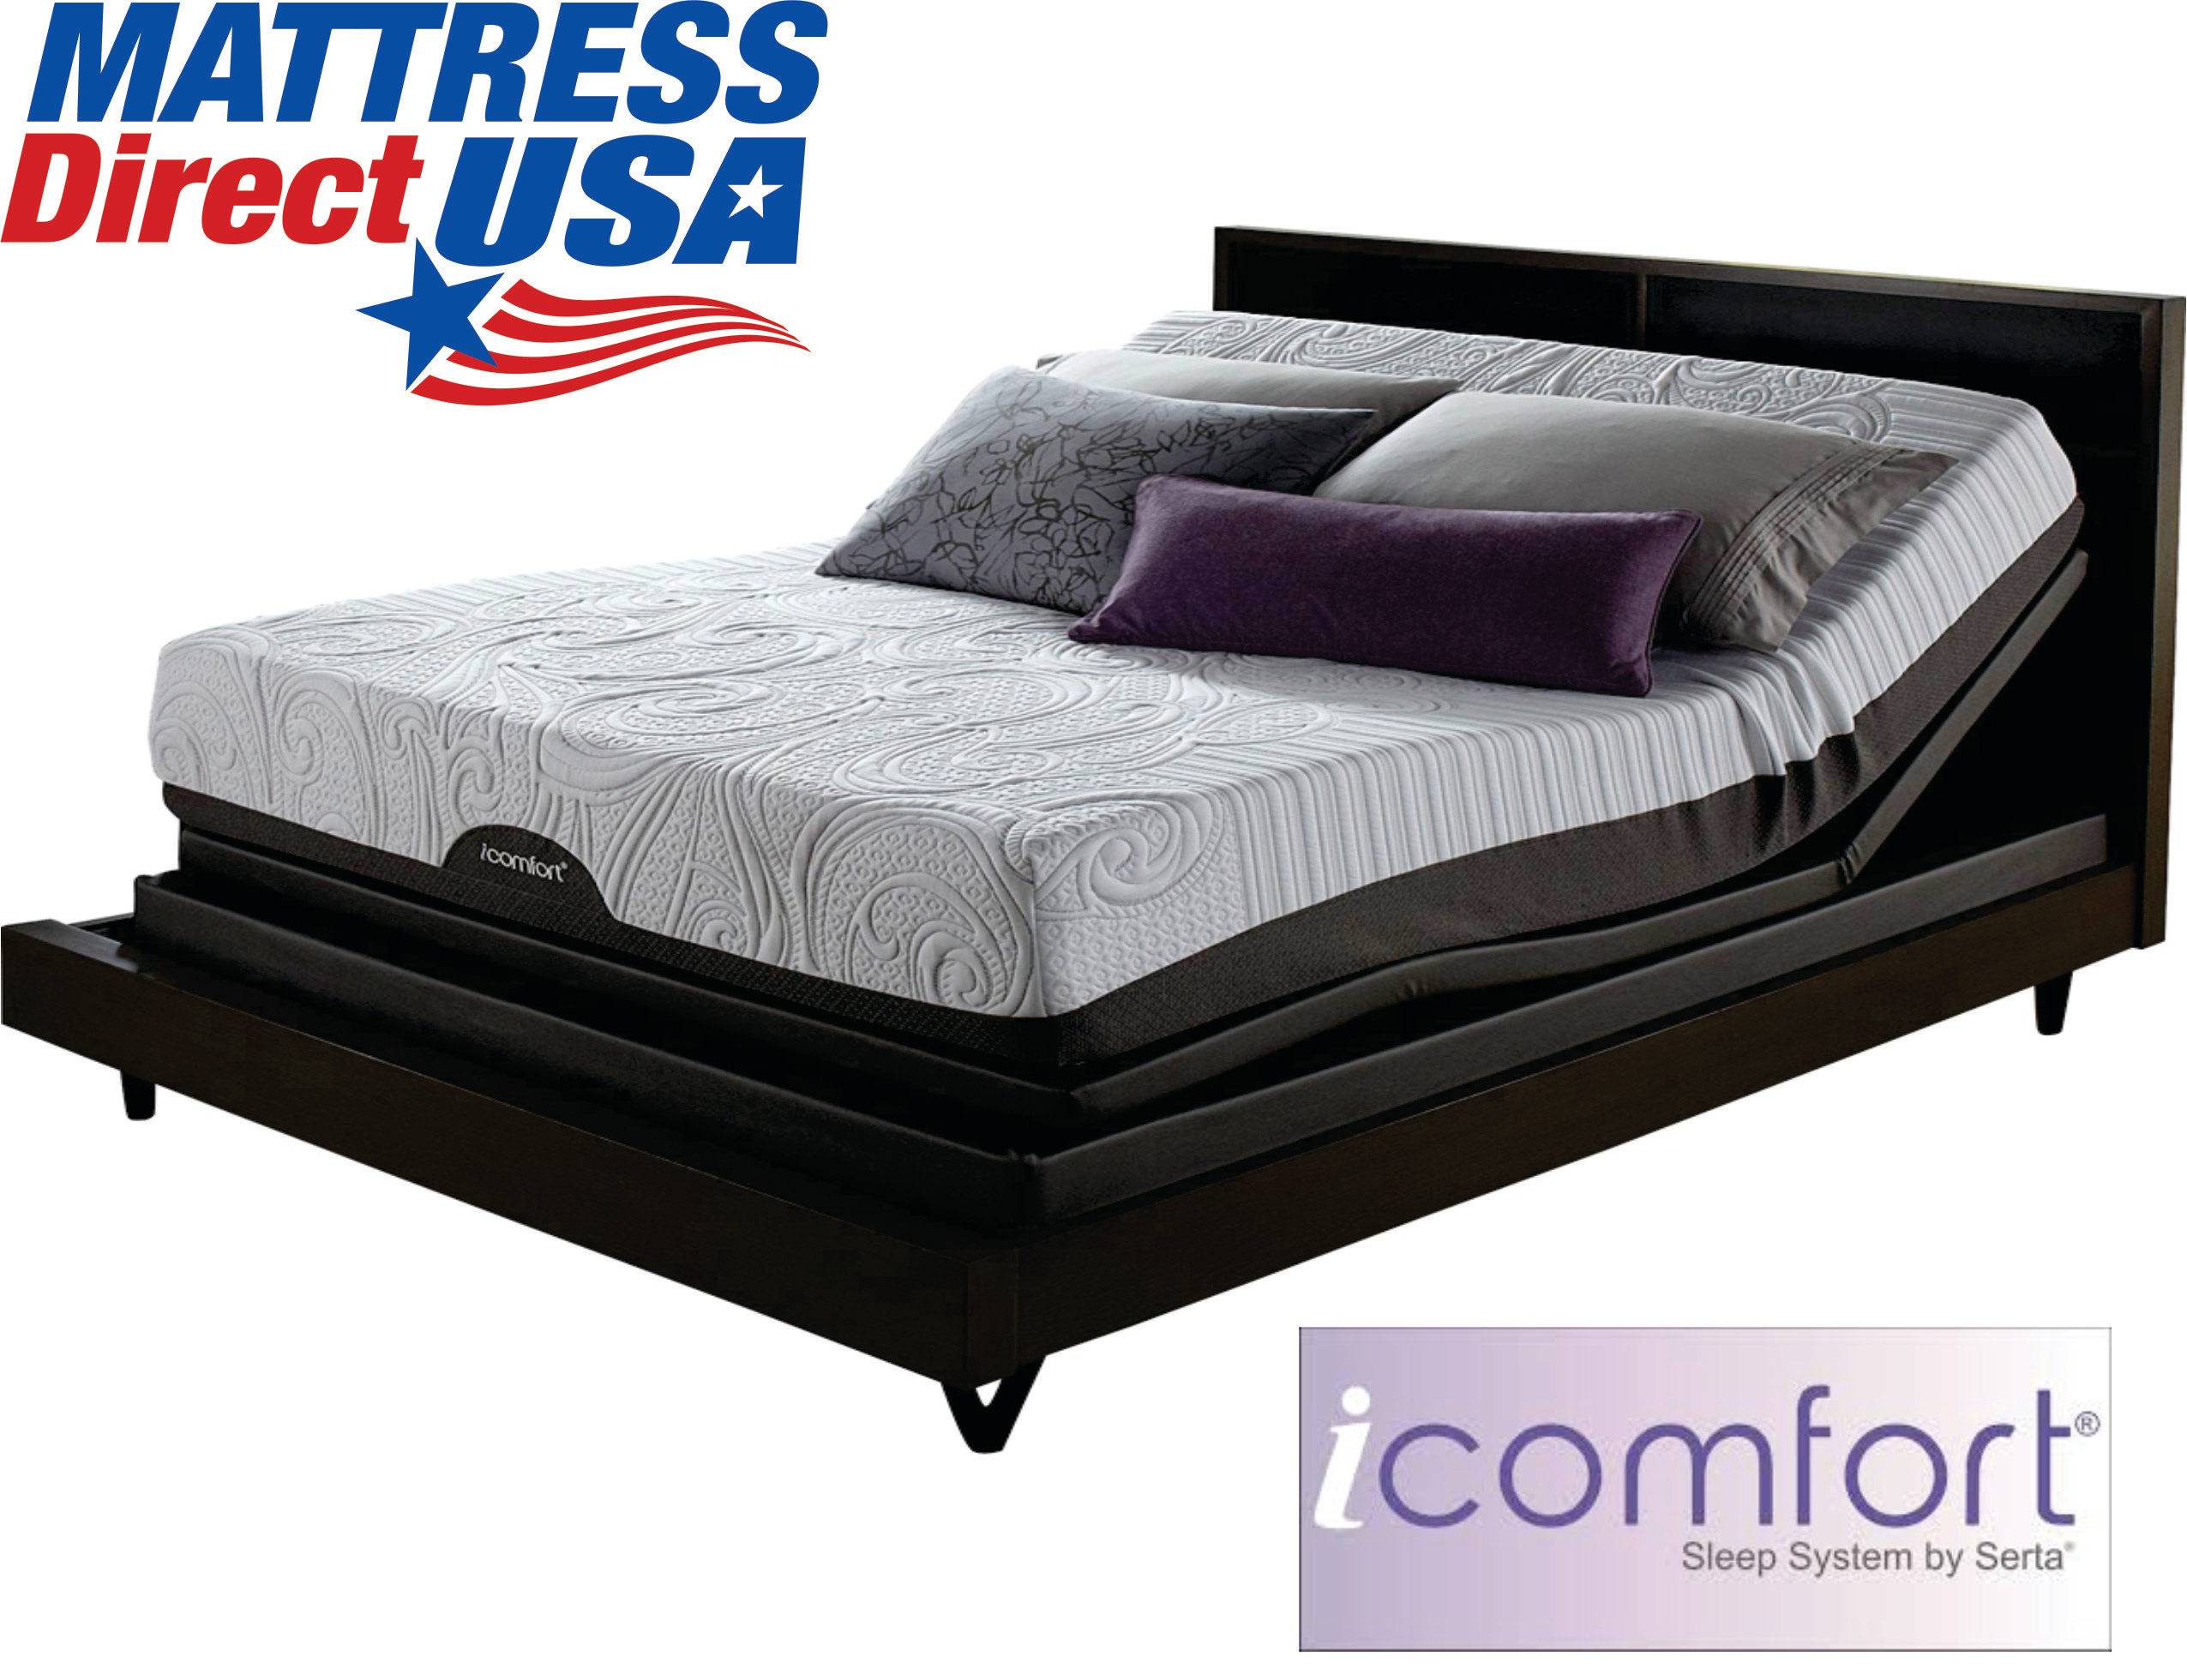 mattress direct usa in sebring fl 33870